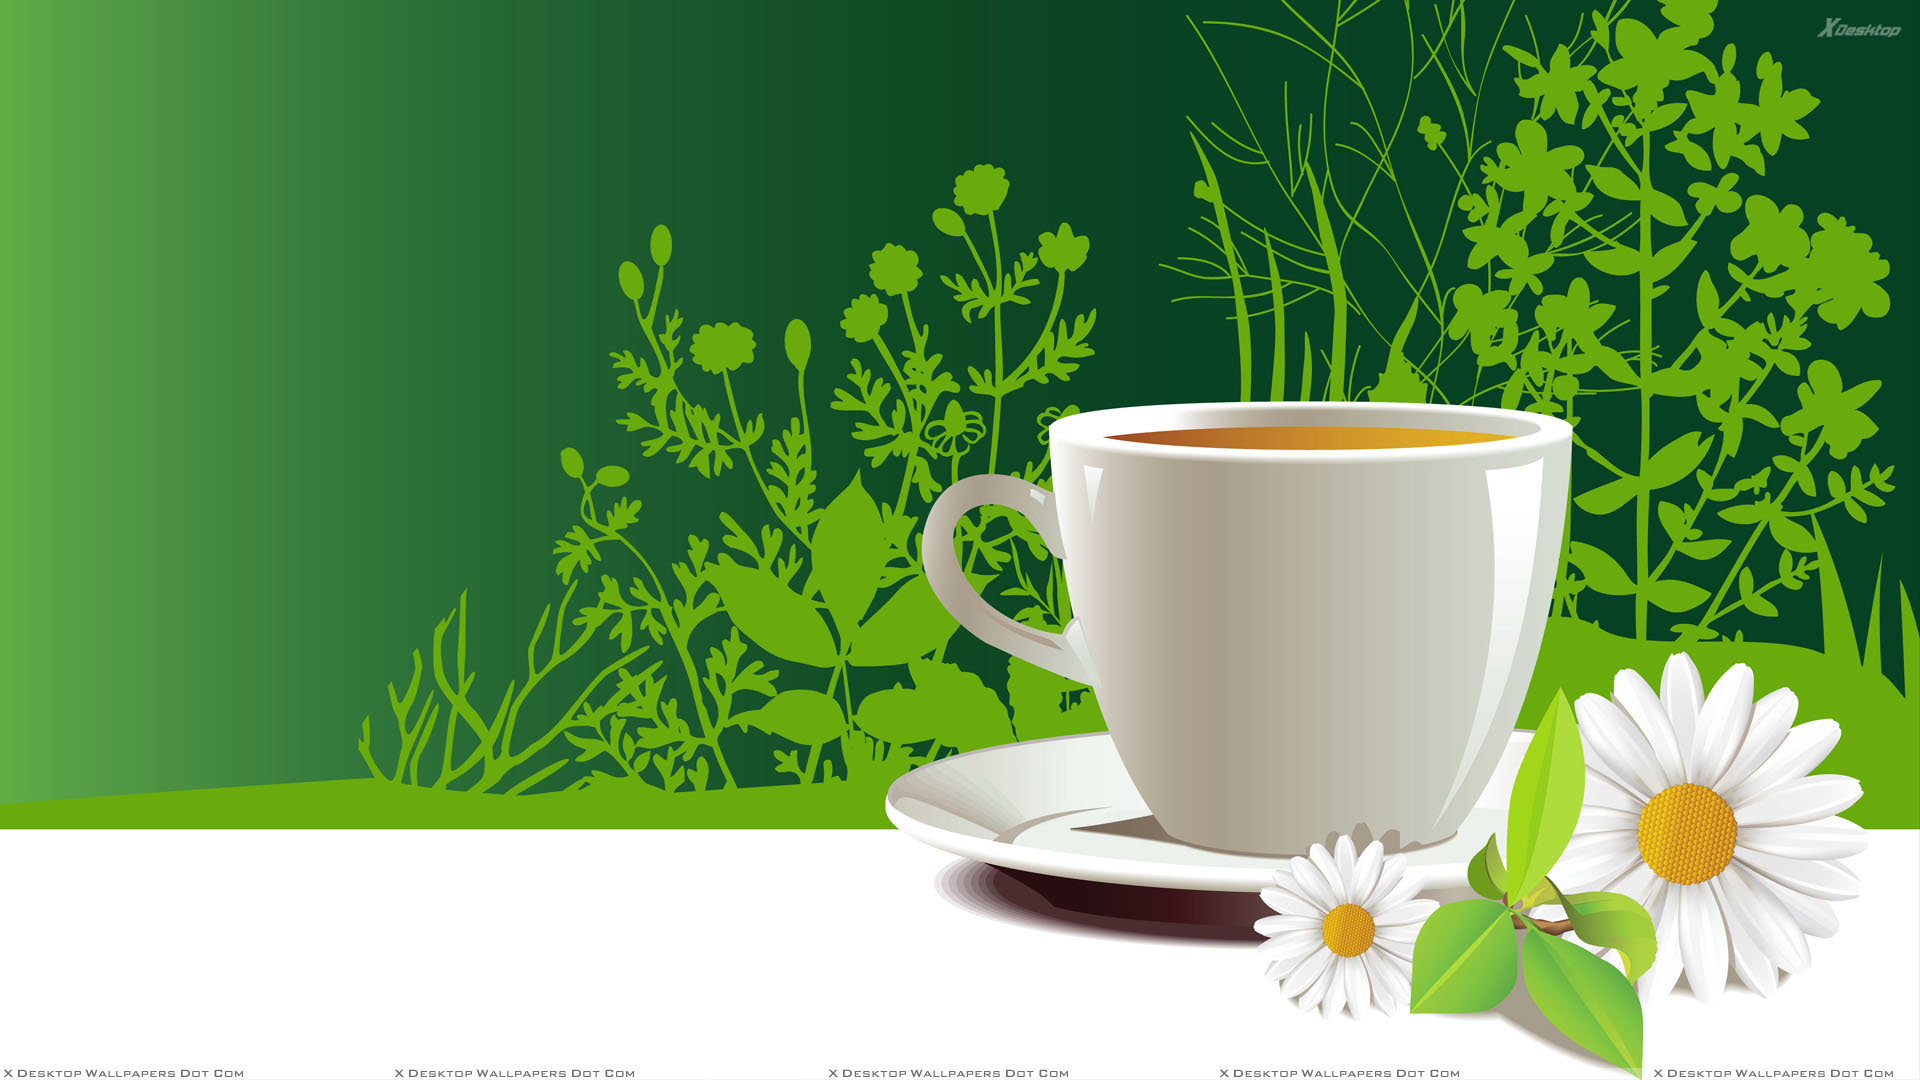 White Artistic Cup Of Tea in Plate with Flower 1920x1080